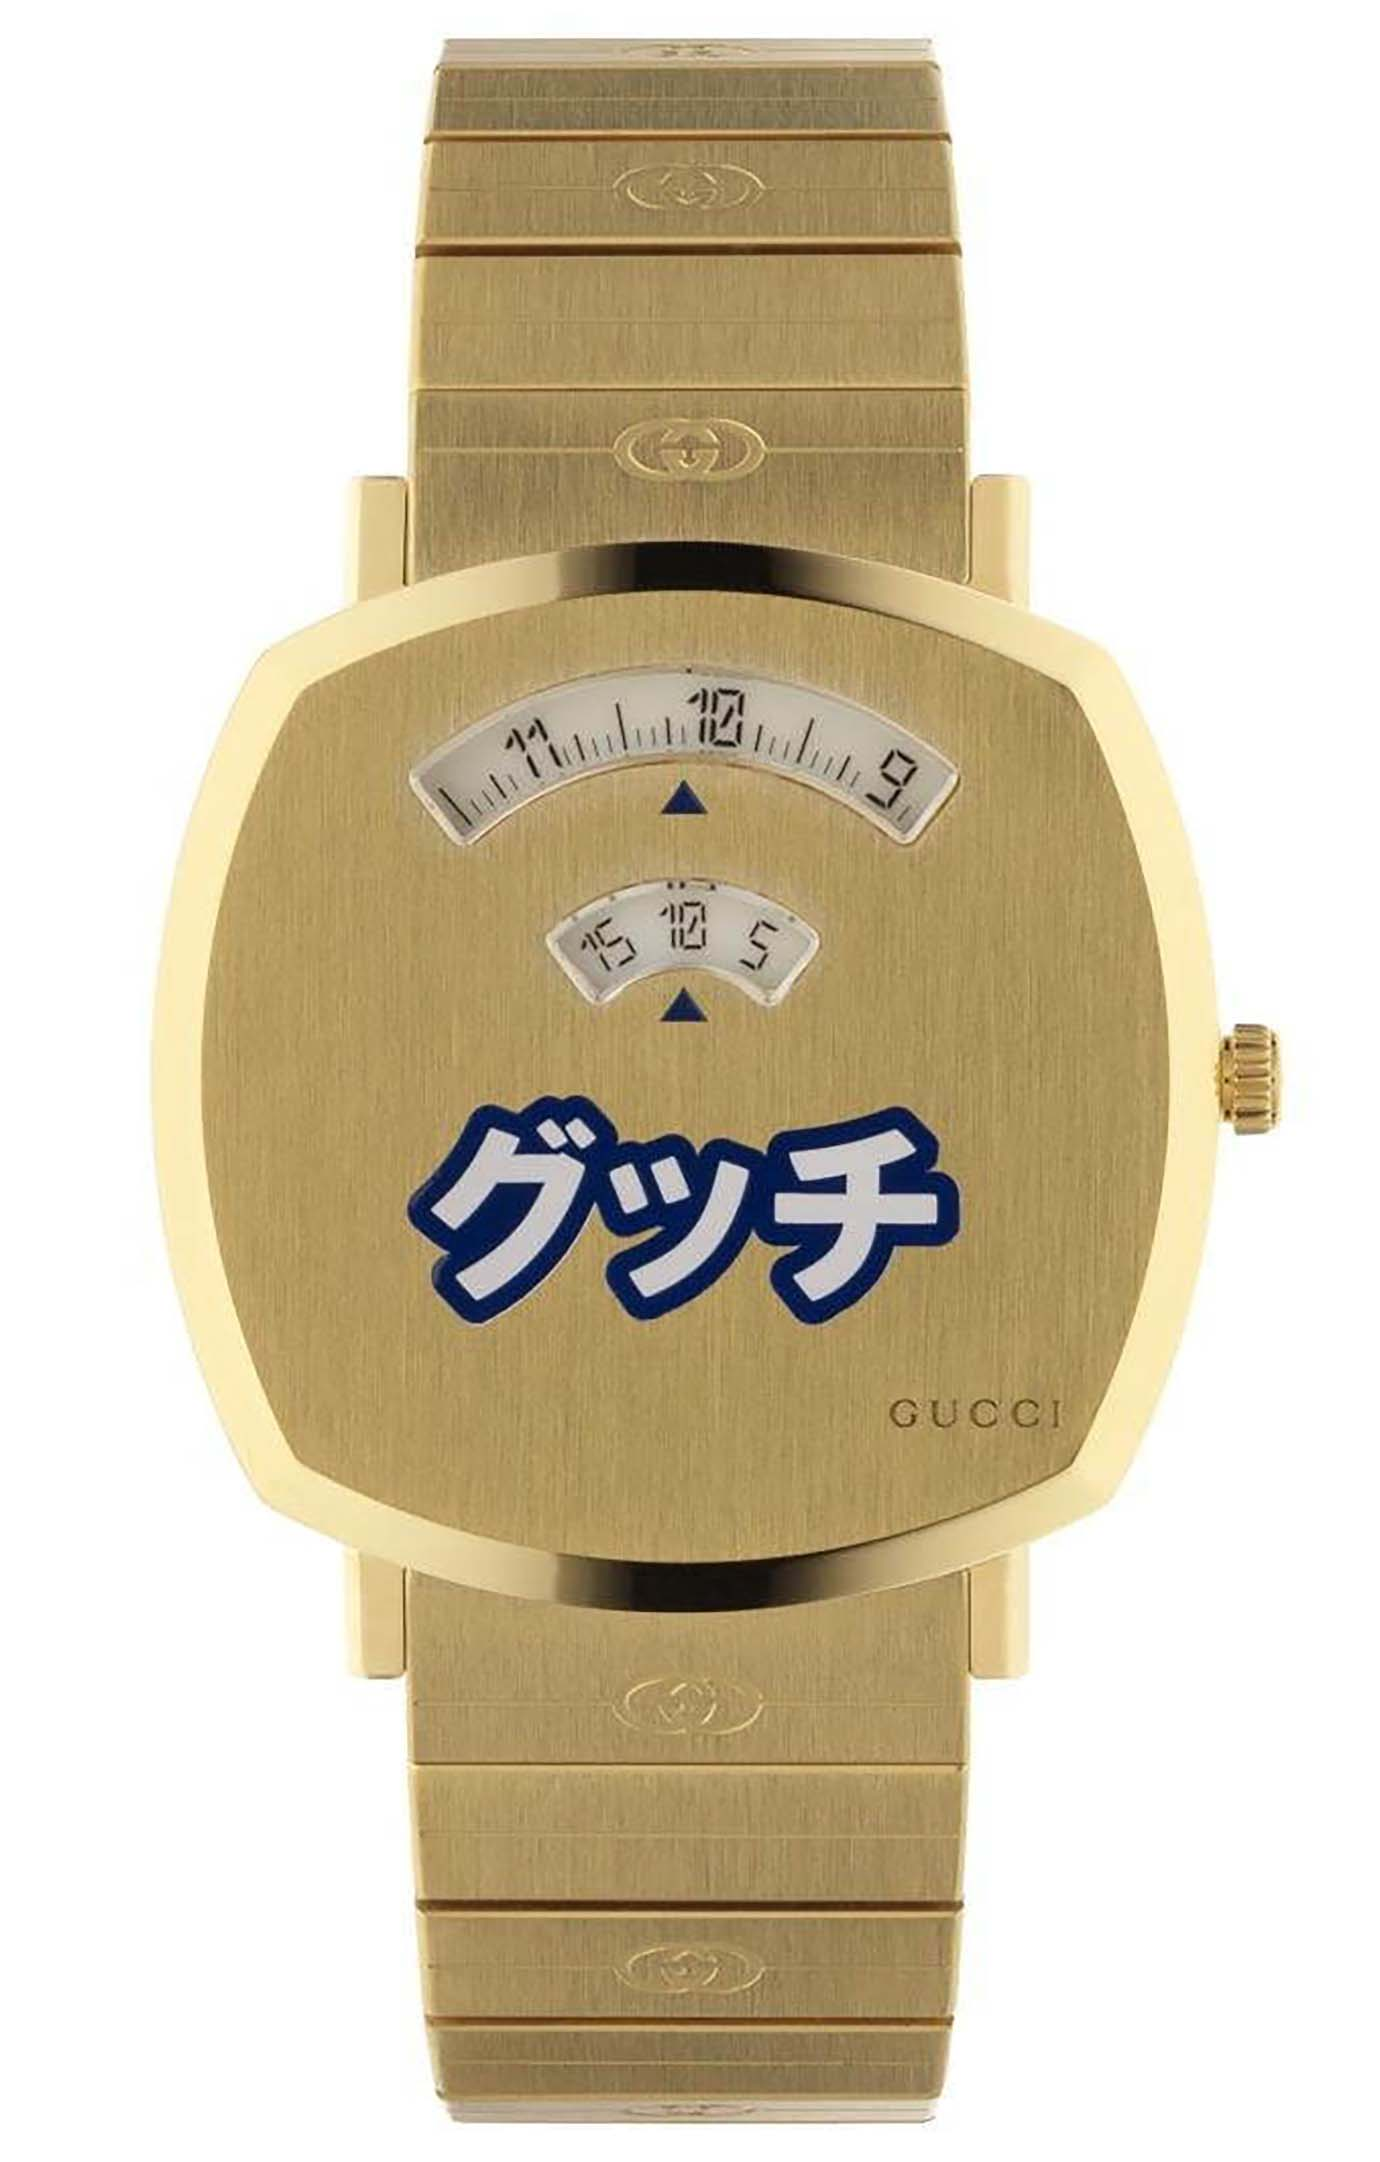 gucci-japan-limited-watch-news